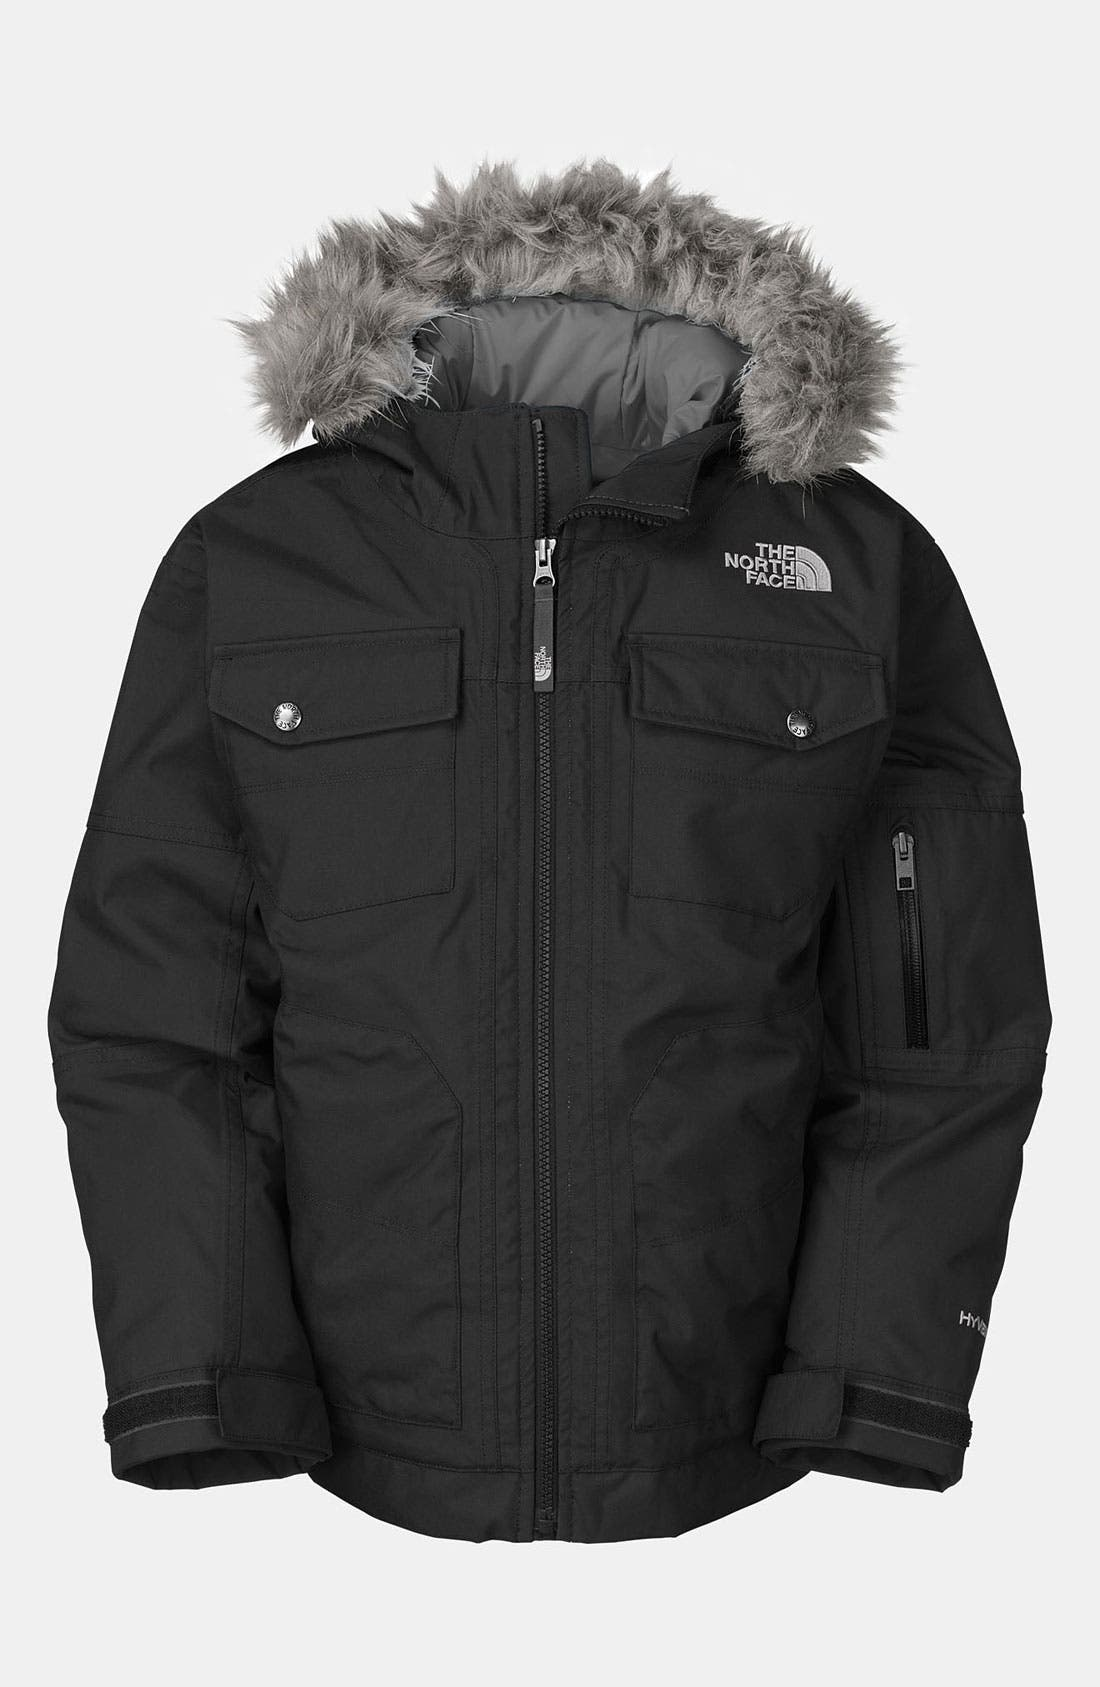 Alternate Image 1 Selected - The North Face 'Yellowband' Parka (Little Boys)